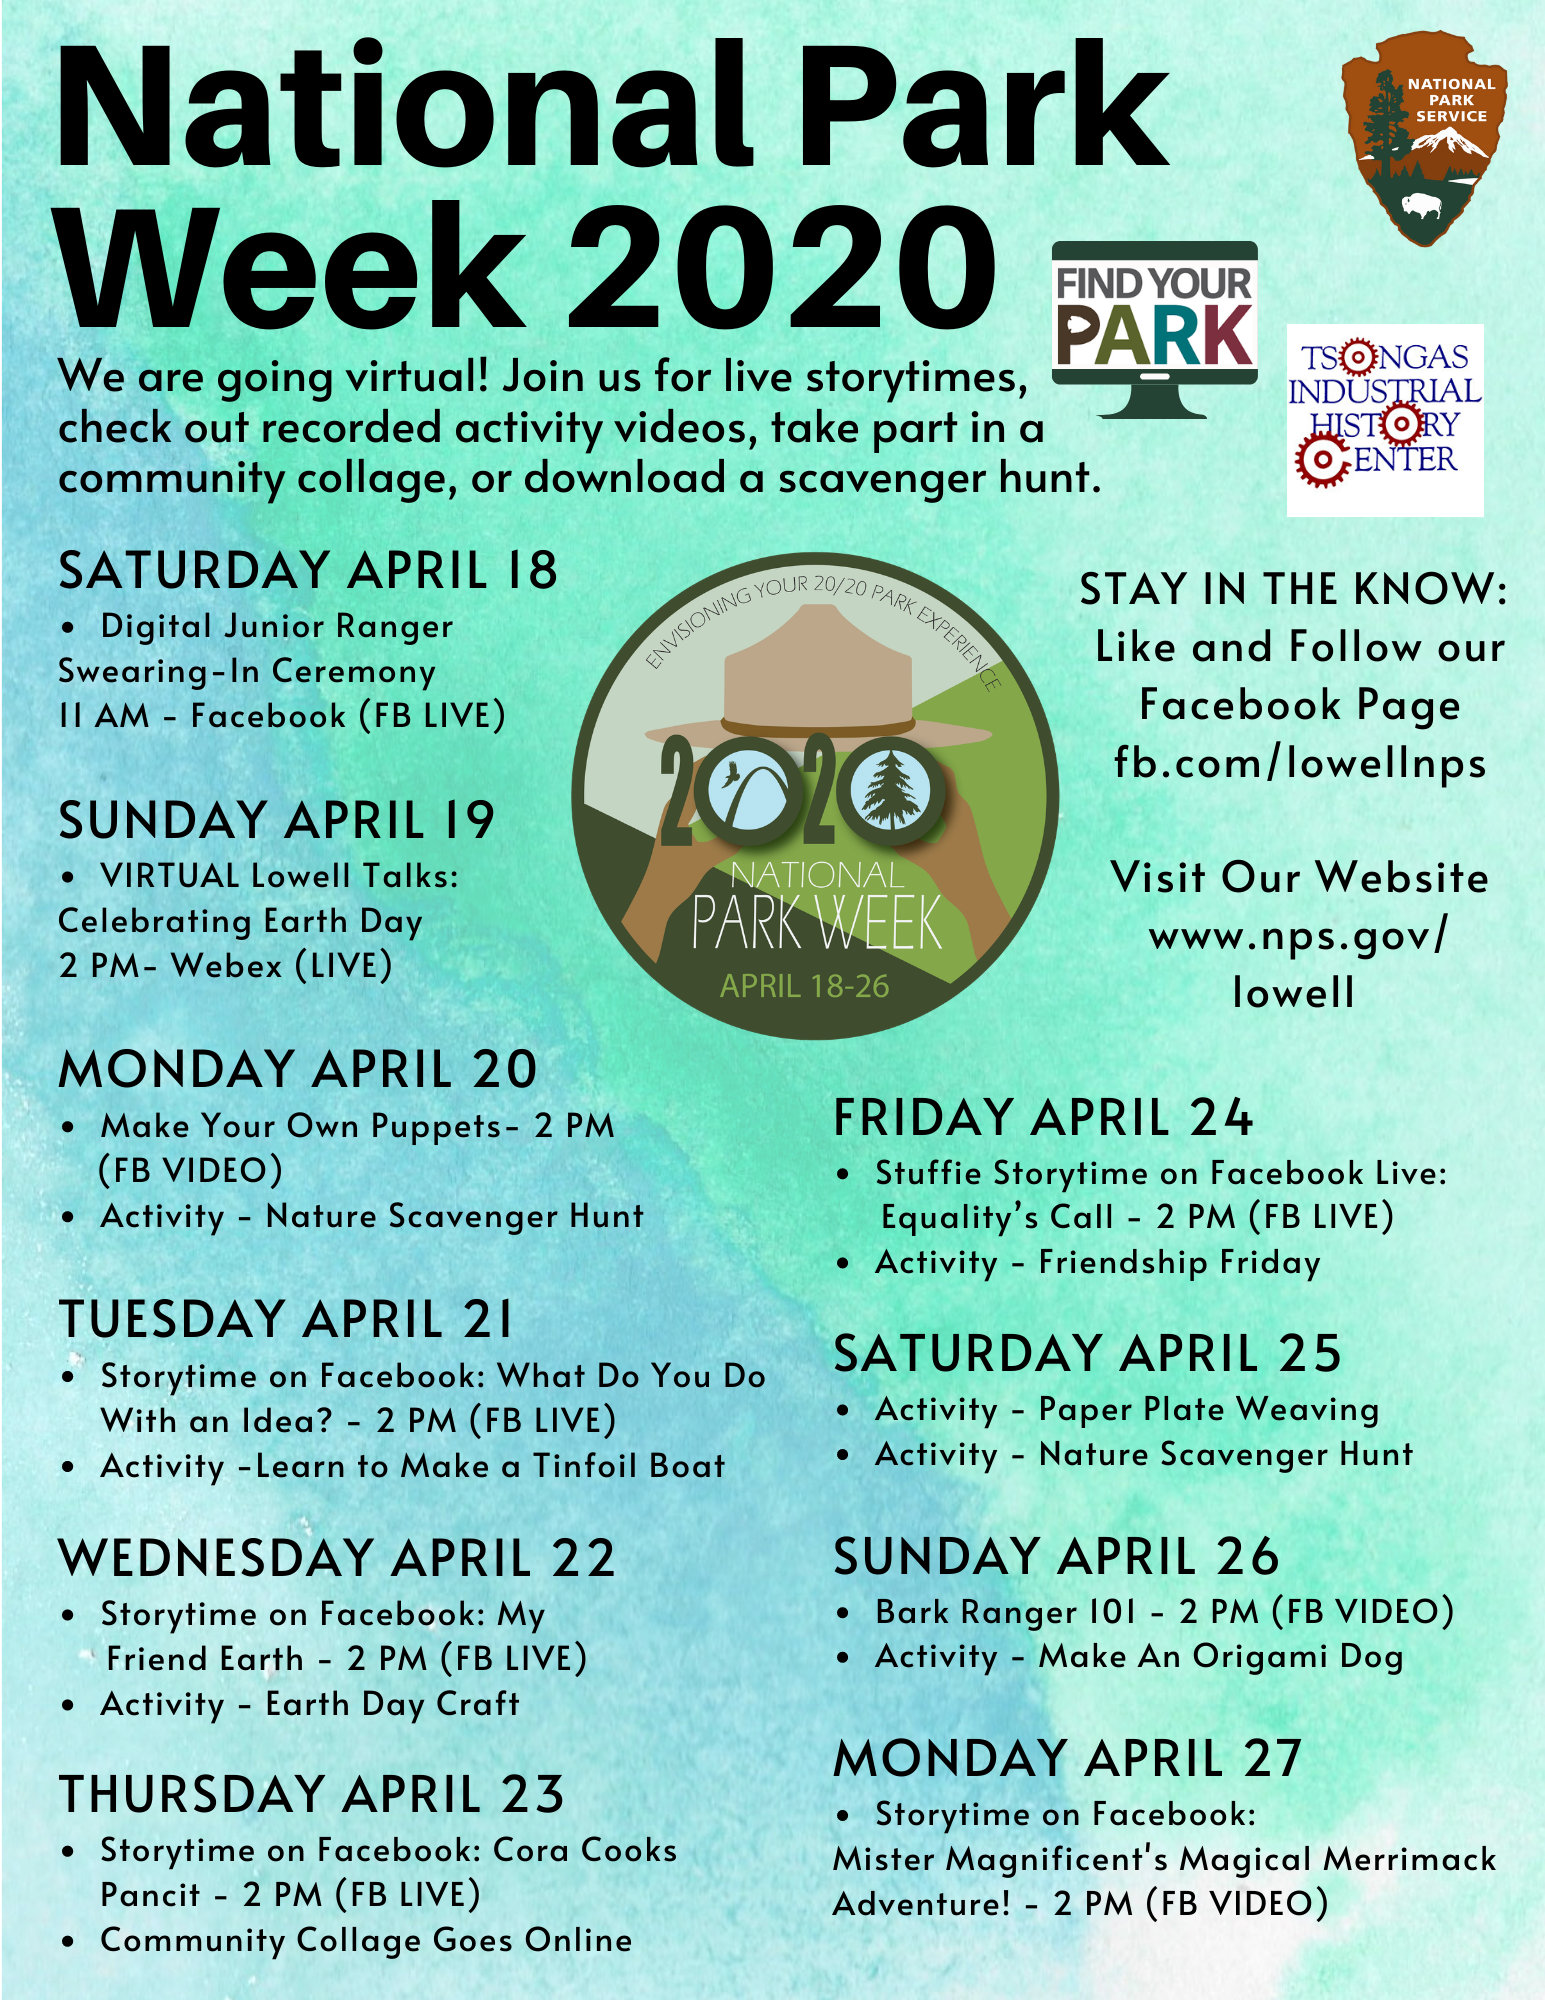 National Park Week 2020